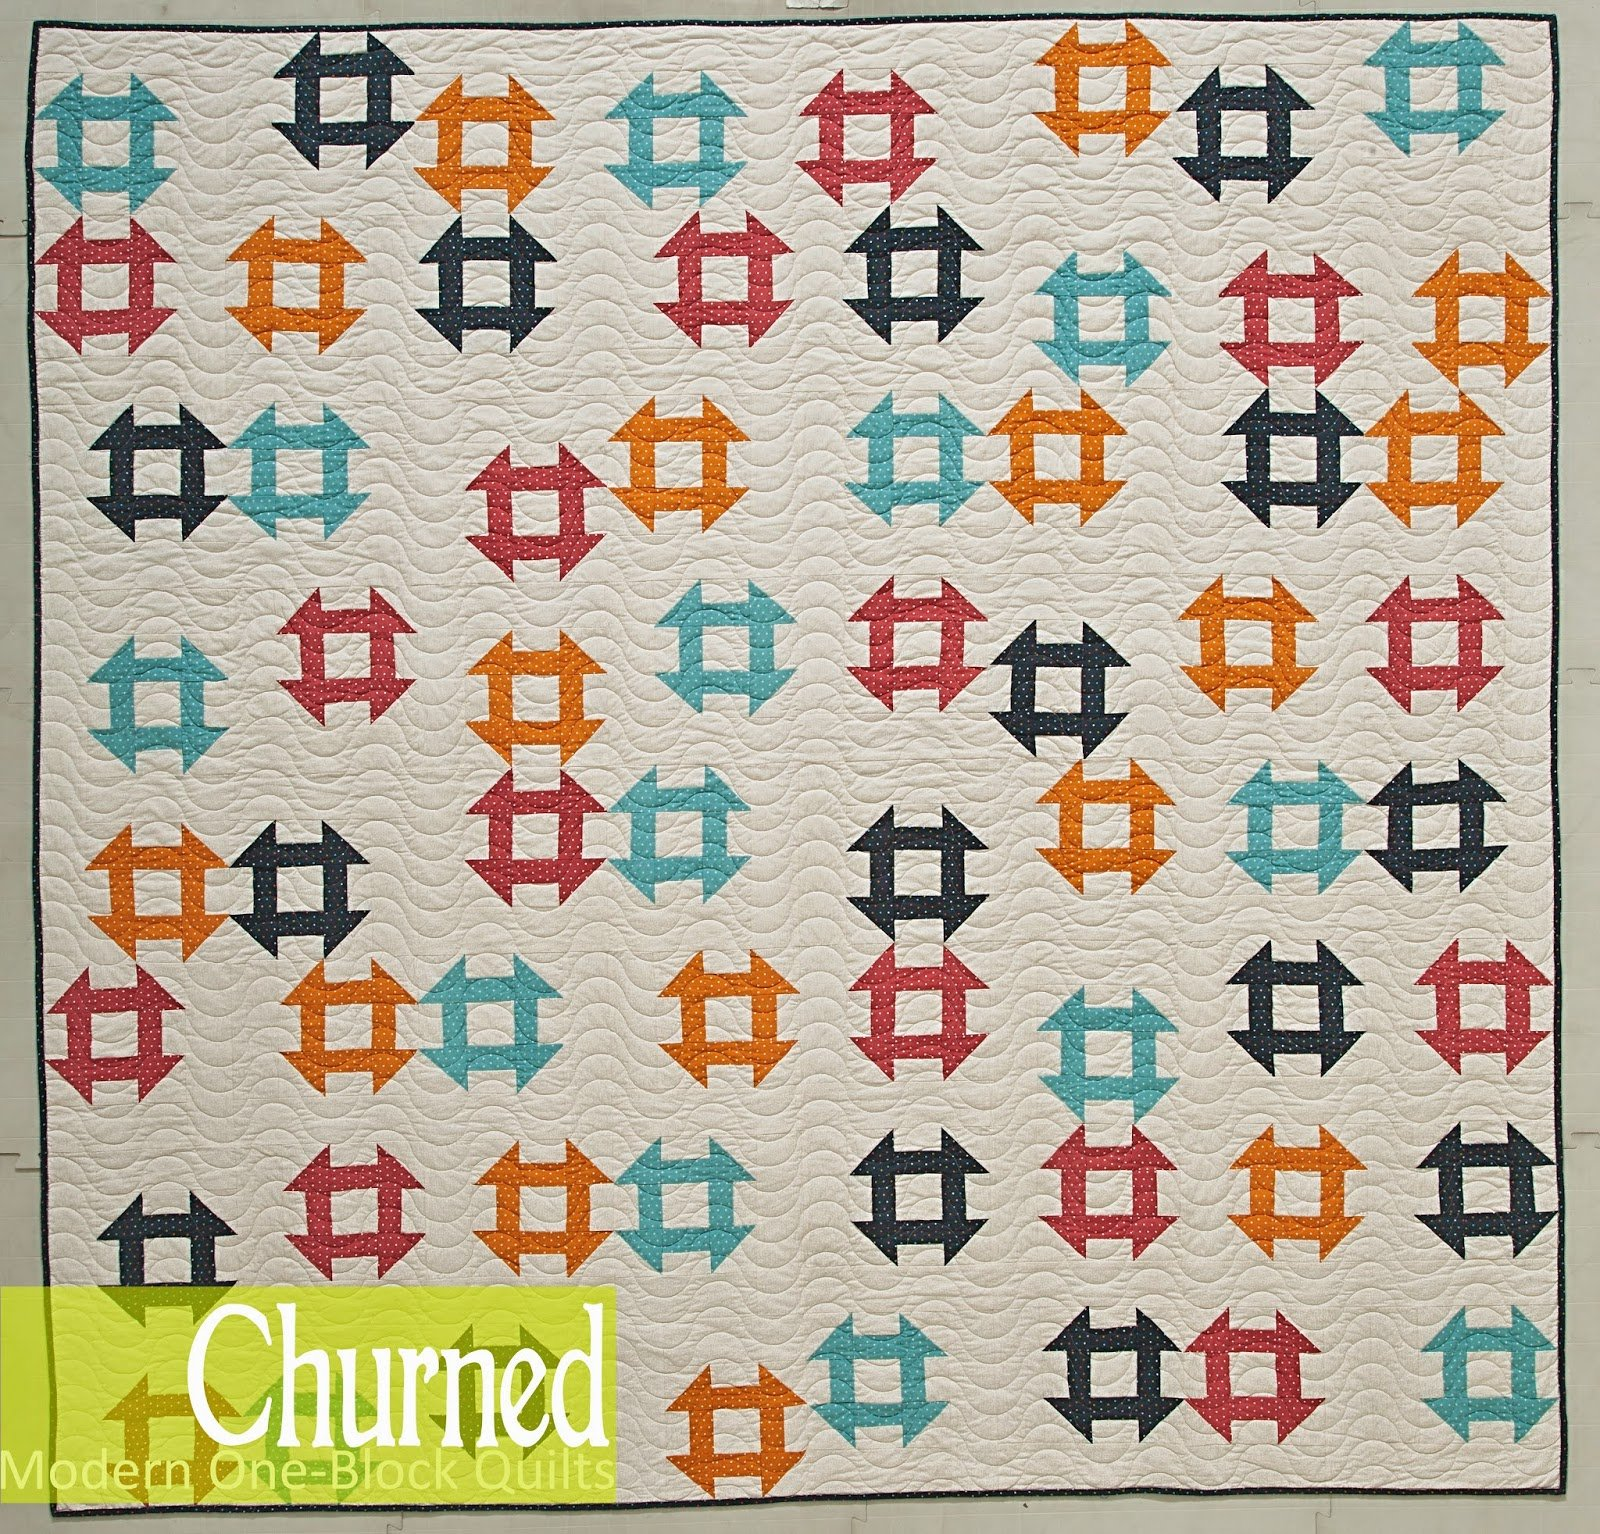 Churned - The Quilt